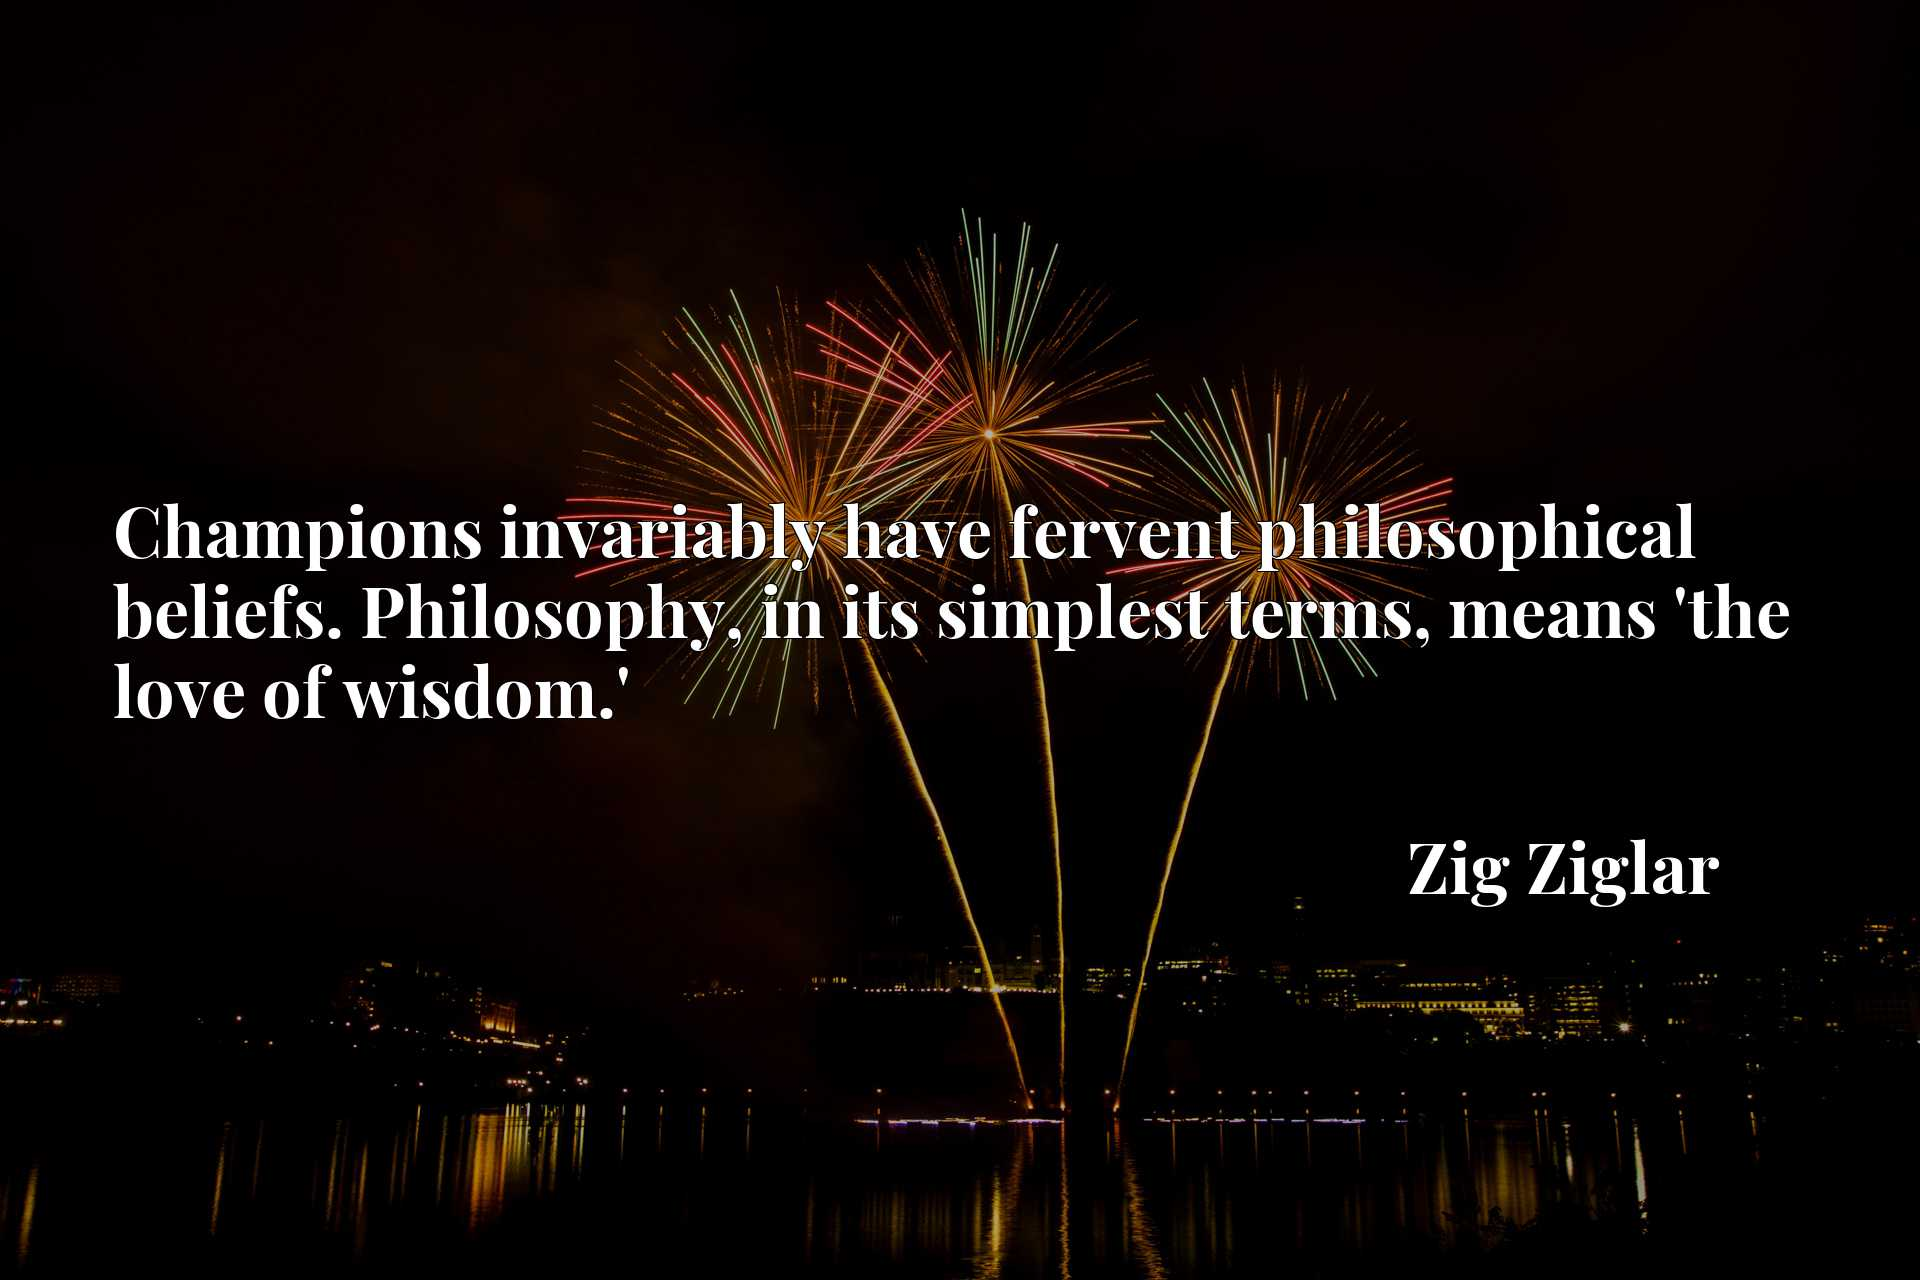 Quote Picture :Champions invariably have fervent philosophical beliefs. Philosophy, in its simplest terms, means 'the love of wisdom.'